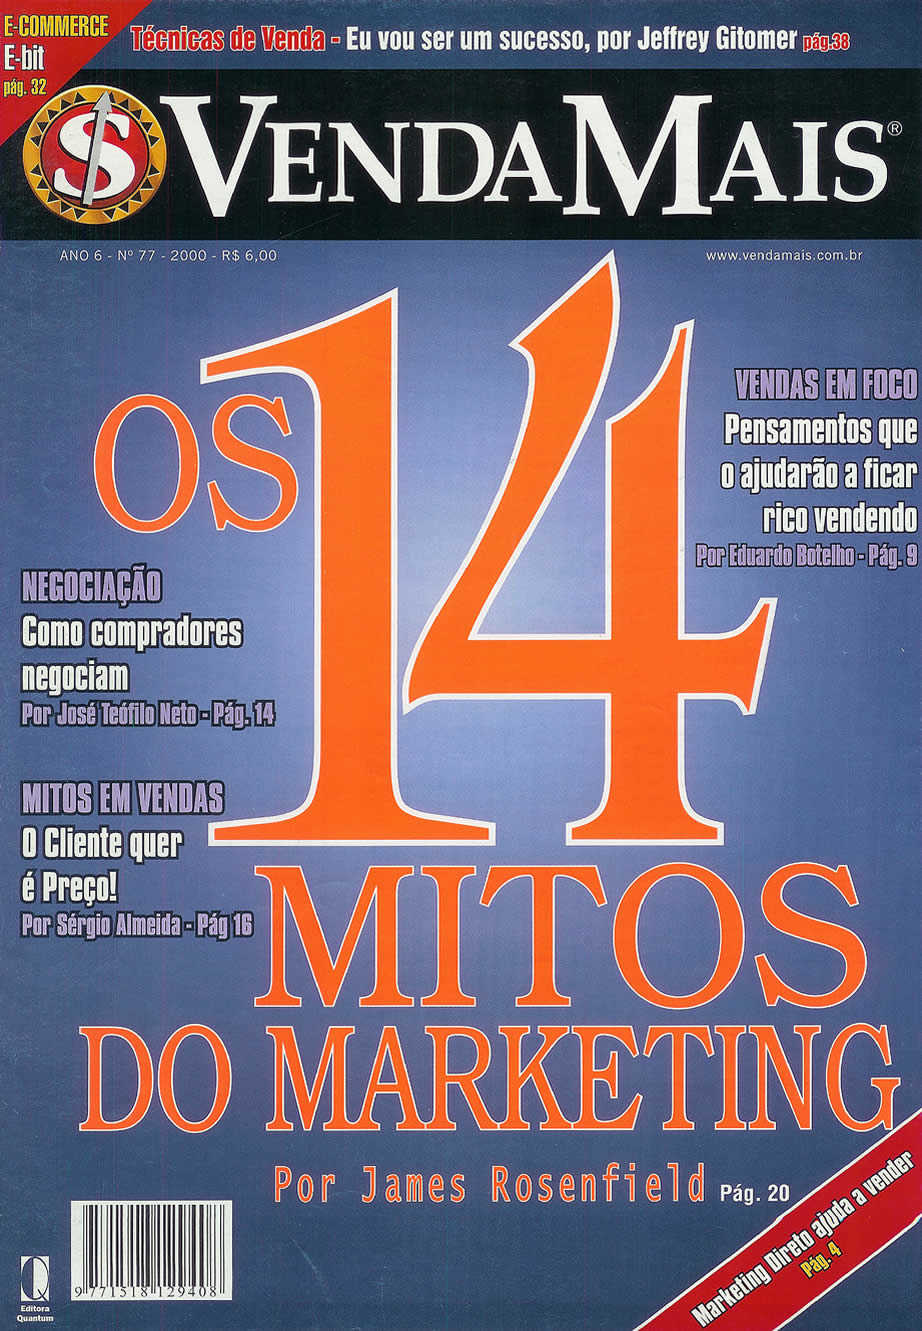 [Set/00] Os 14 mitos do marketing